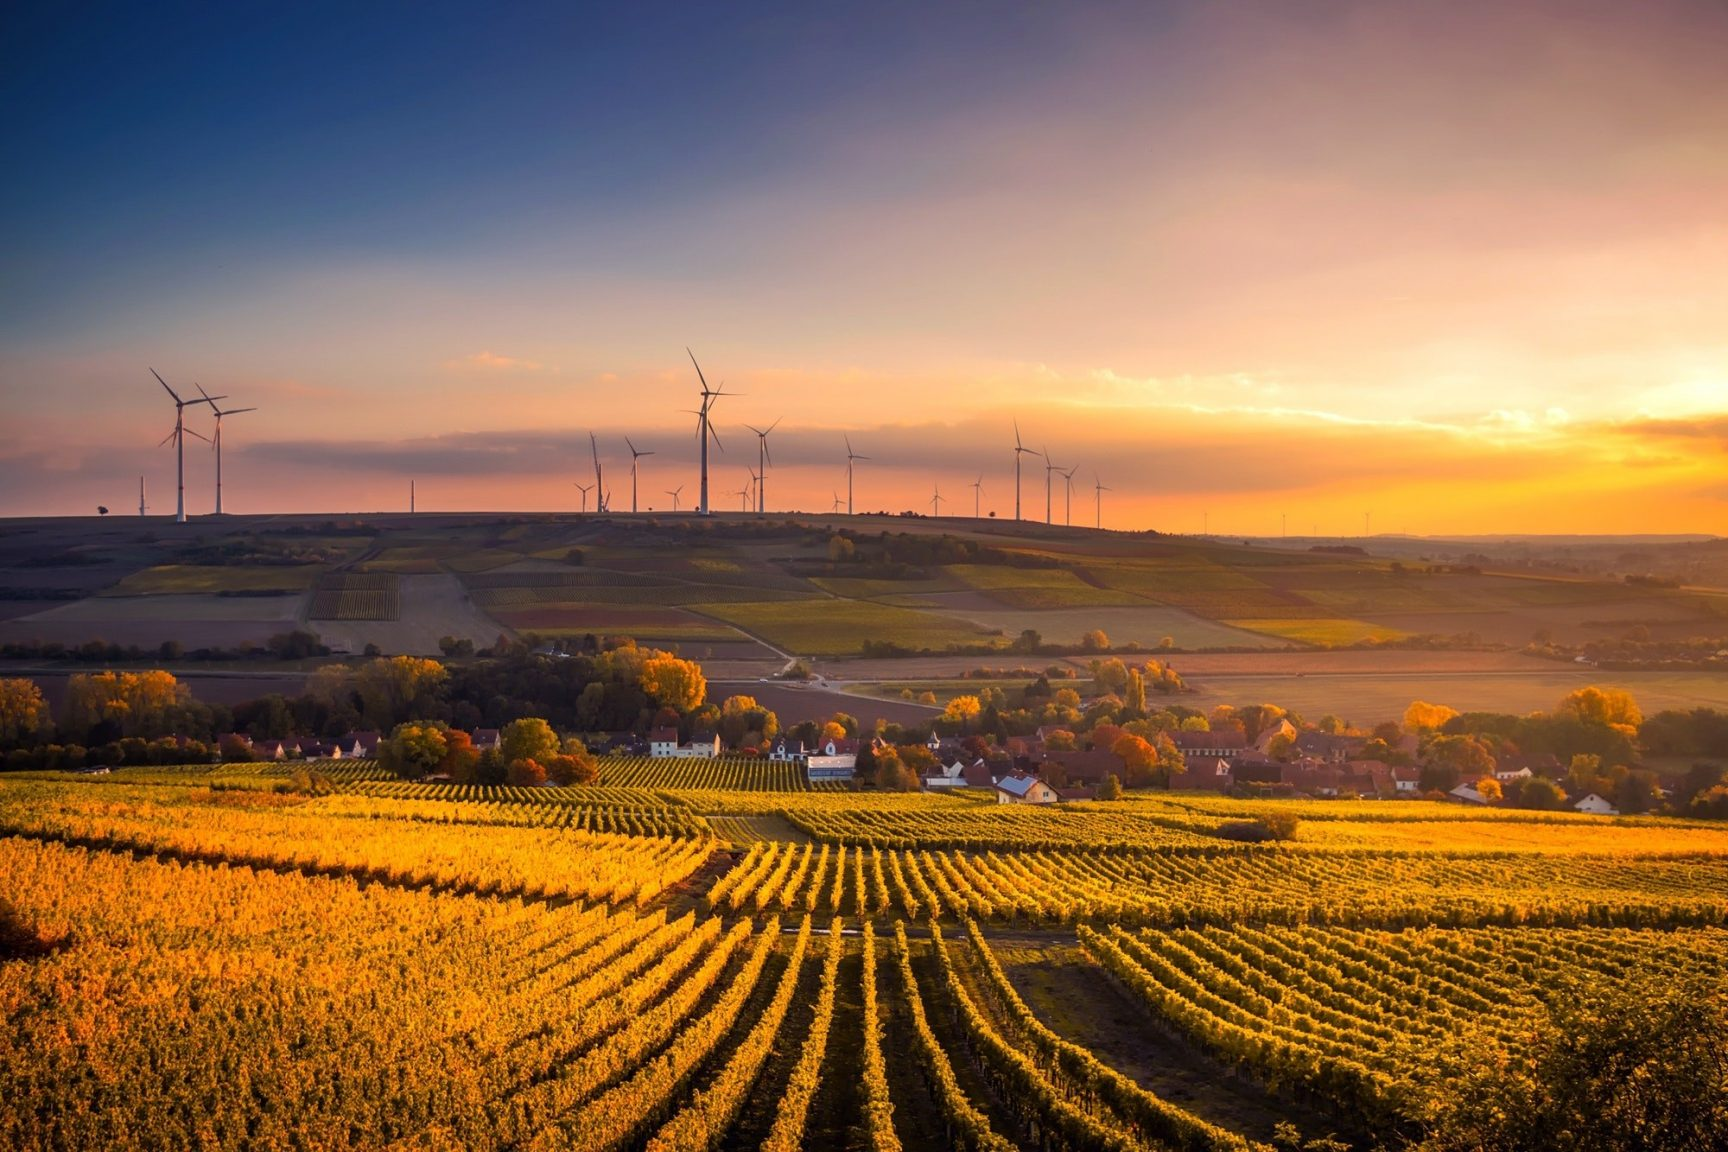 A landscape at sunset. There is a field of crops, a small valley with a village, and wind turbines in the distance.